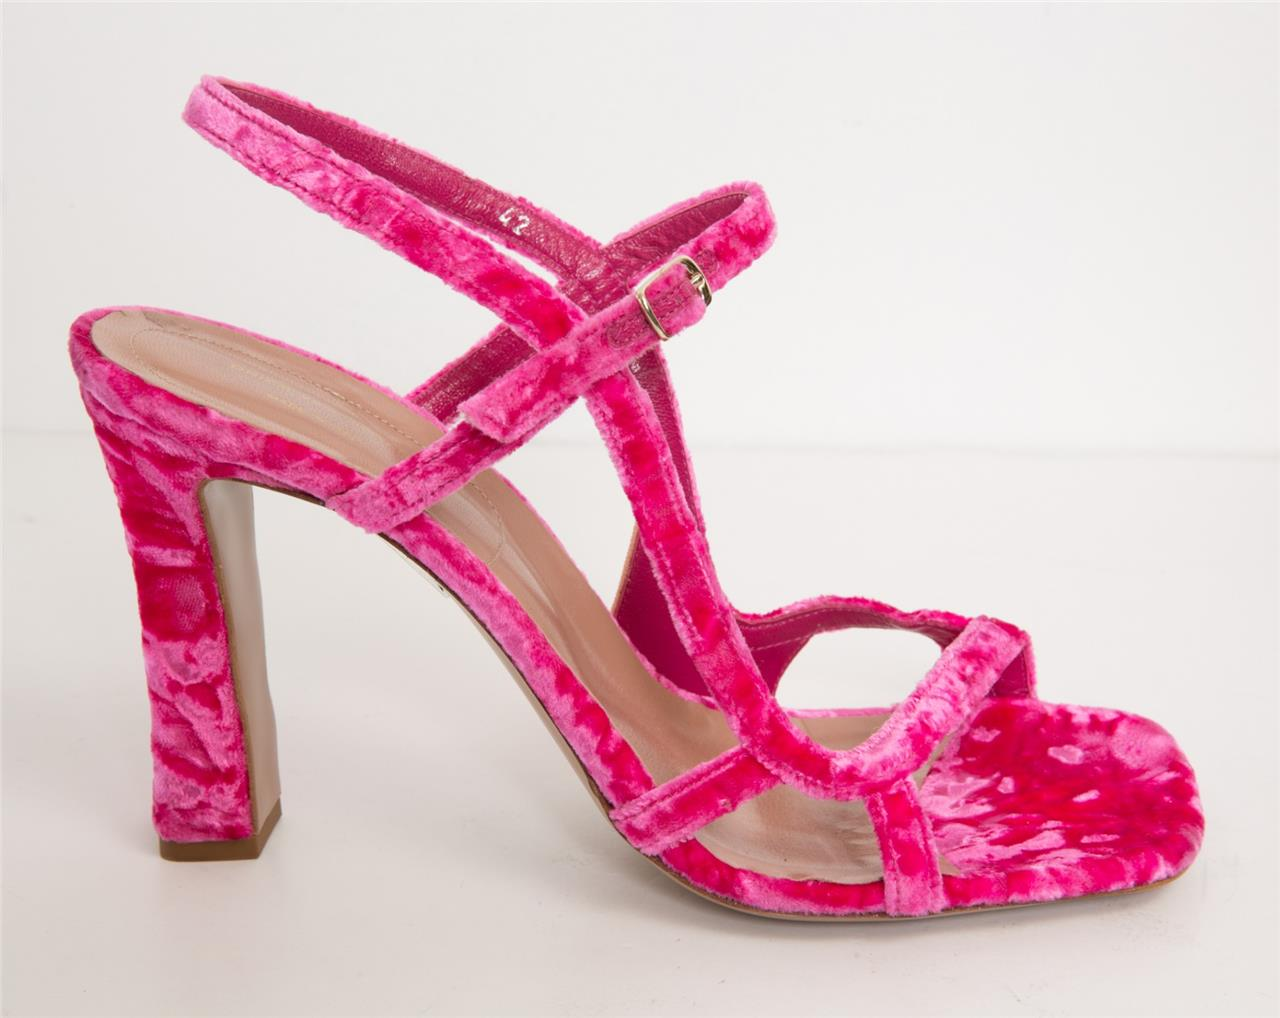 f0ef4b2ebfb Details about DRIES VAN NOTEN Fuchsia Pink Crushed Velvet Strappy Square  Toe Sandal 12-42